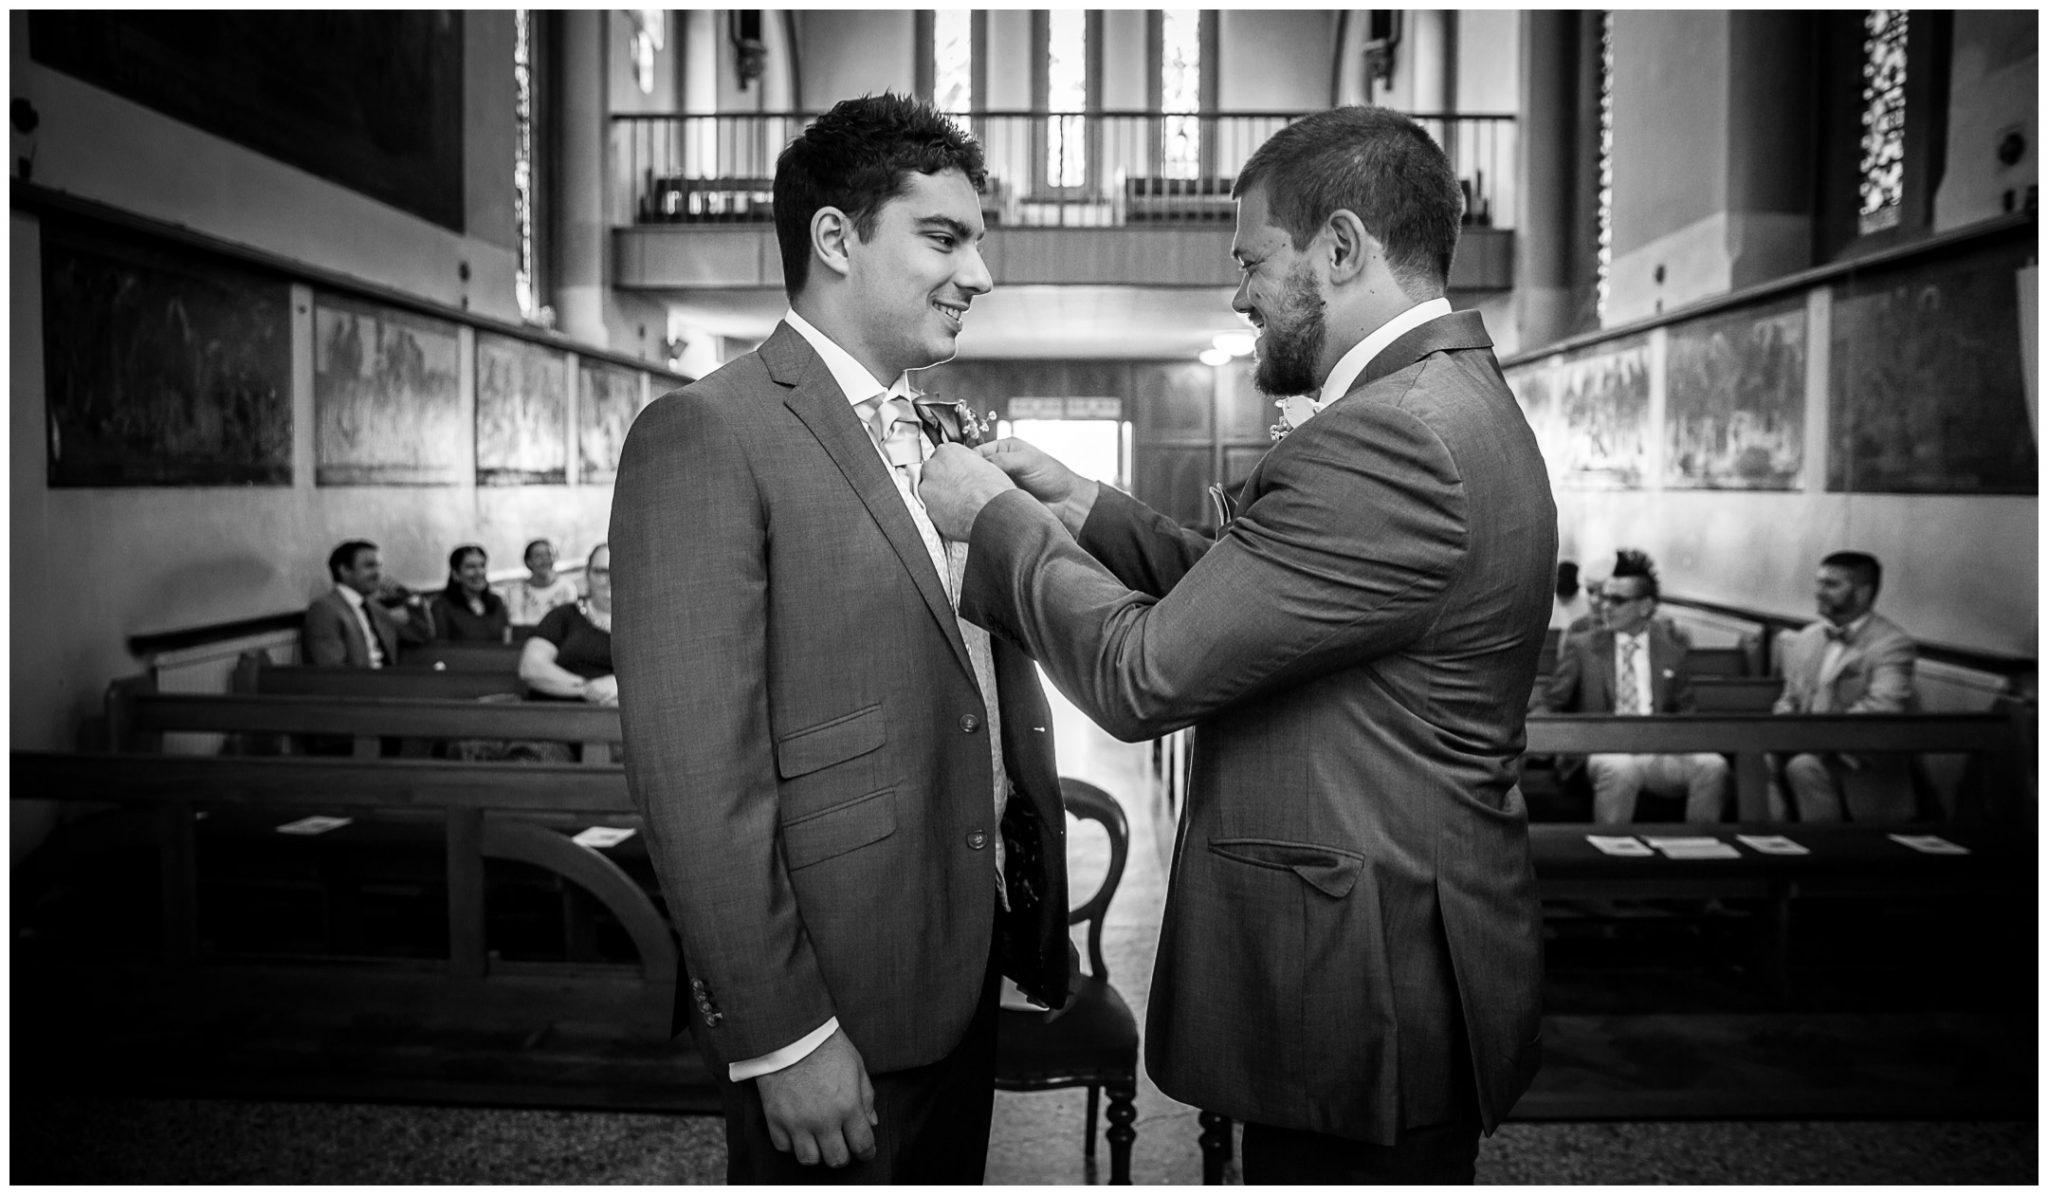 The best man adjusts the groom's tie before his bride arrives